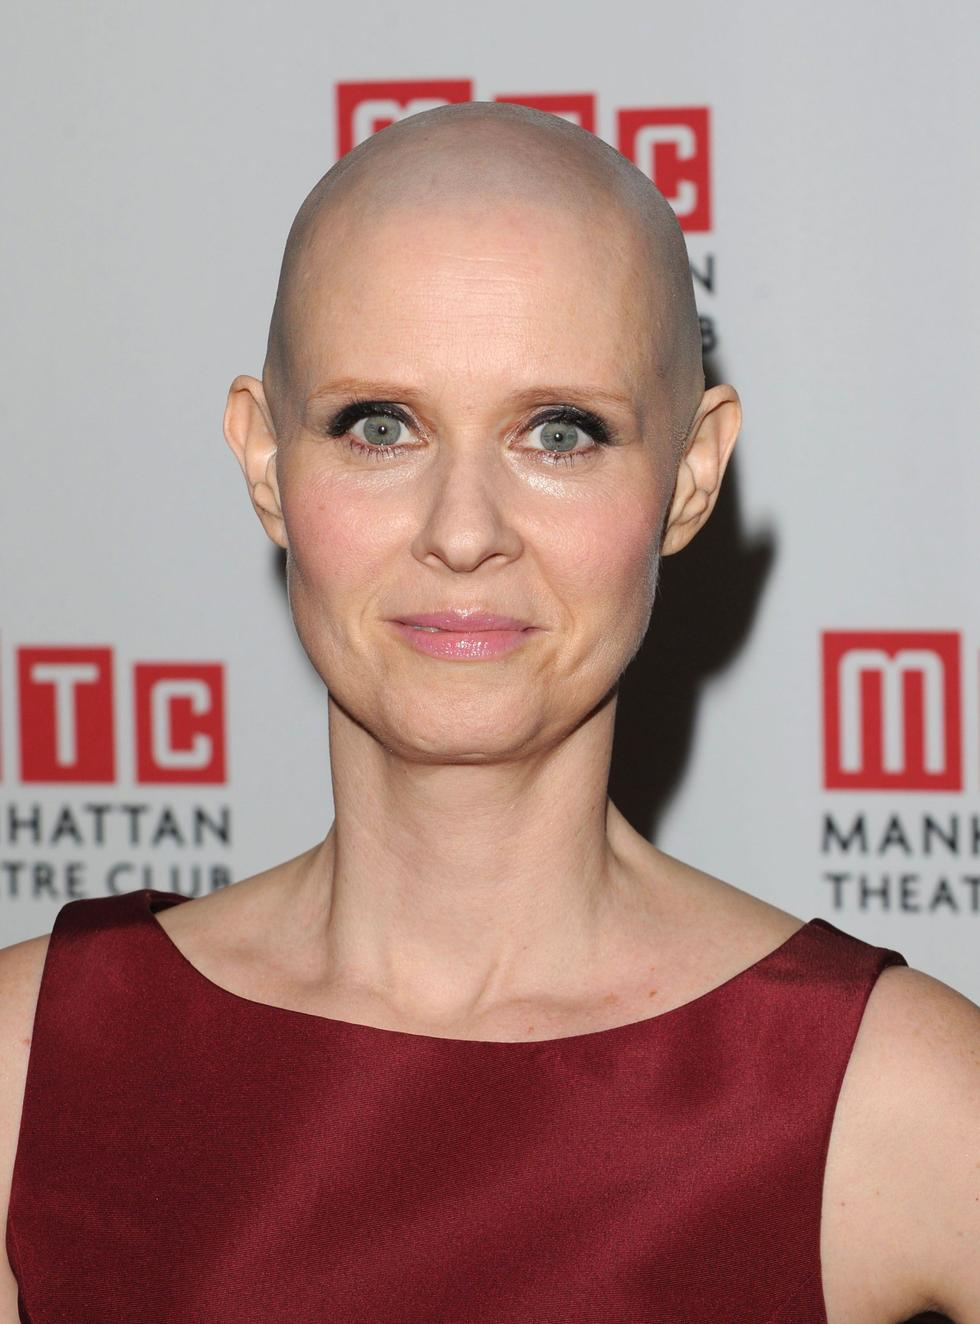 """In 2012, 'Sex and the City' star Cynthia Nixon went bald to play a cancer patient in the play, 'Wit'.  """"I thought it was kind of gonna be no muss-no fuss, but I have to shave it every day,"""" she said of the look. """"It's got kind of a five o'clock shadow, and you don't want to go on with that."""""""